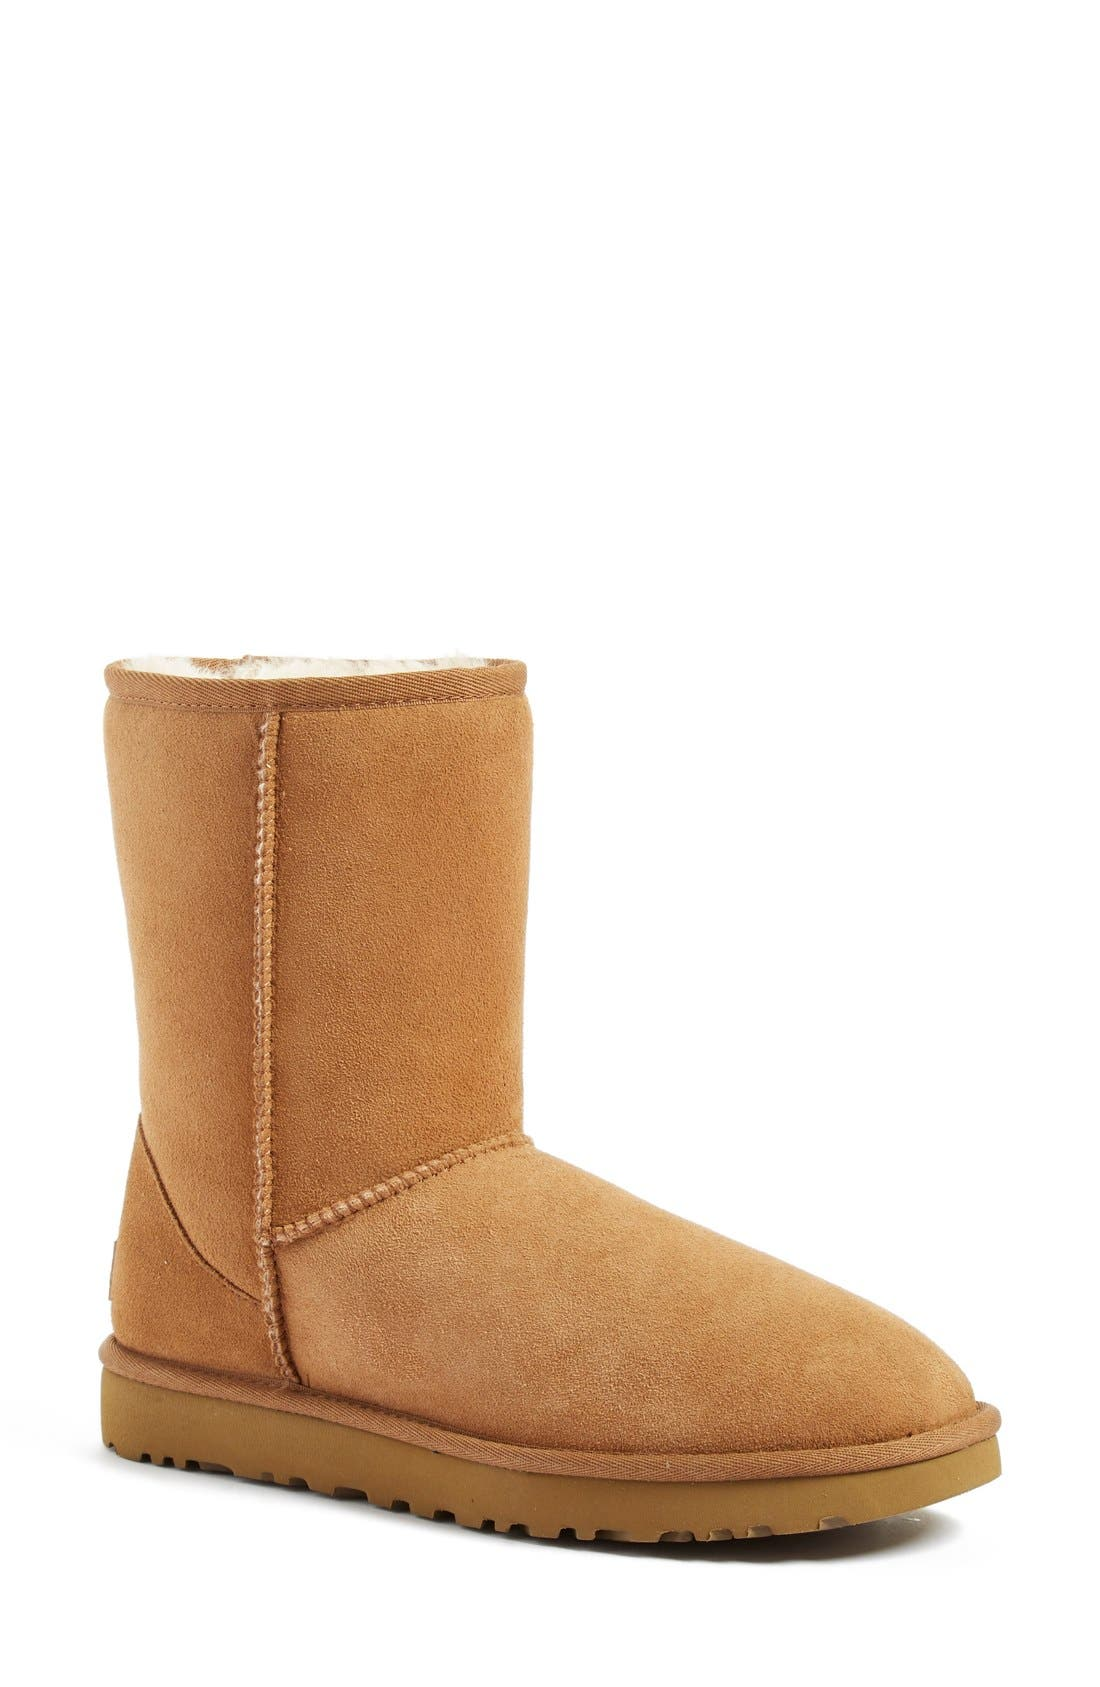 Alternate Image 1 Selected - UGG® 'Classic II' Genuine Shearling Lined Short Boot (Women)